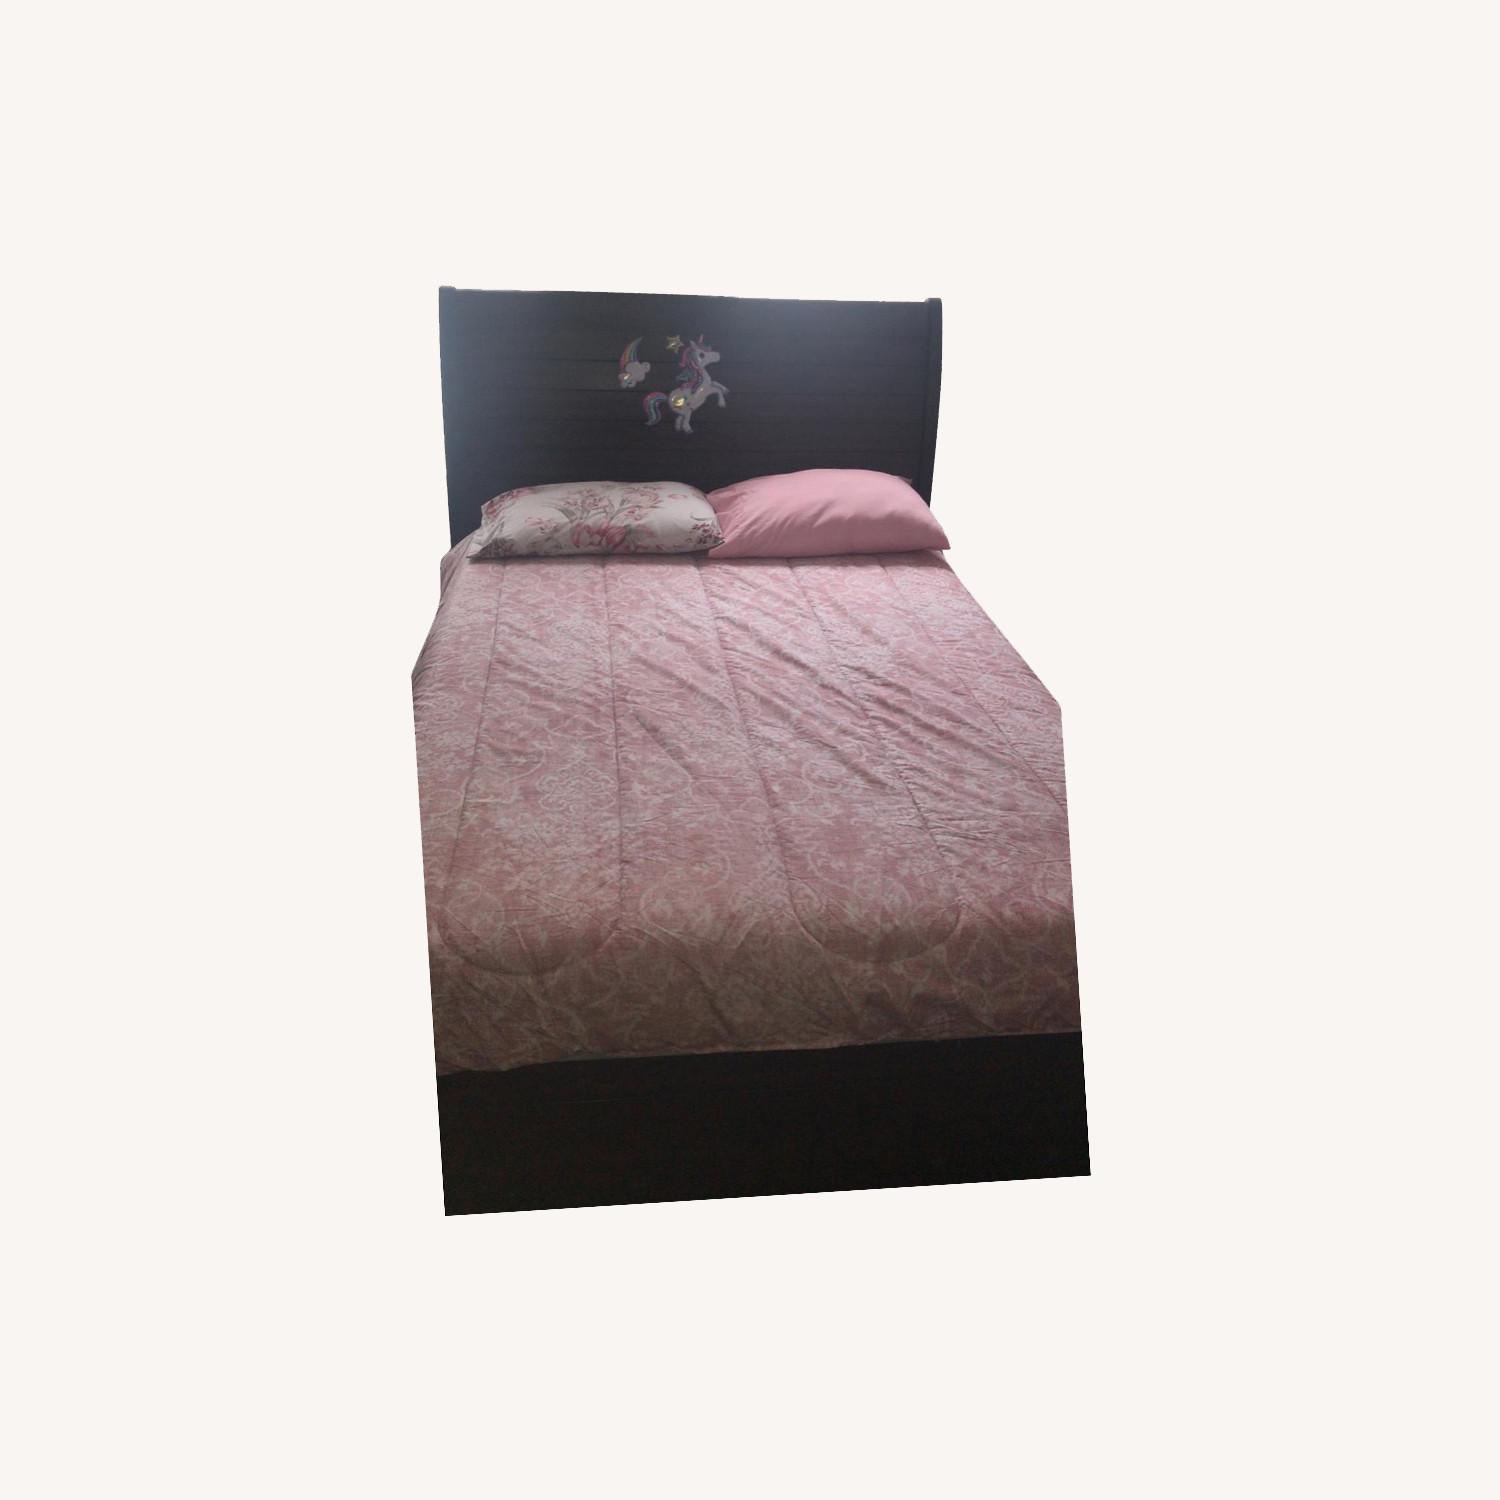 Bob's Discount  Full size Bed - image-0